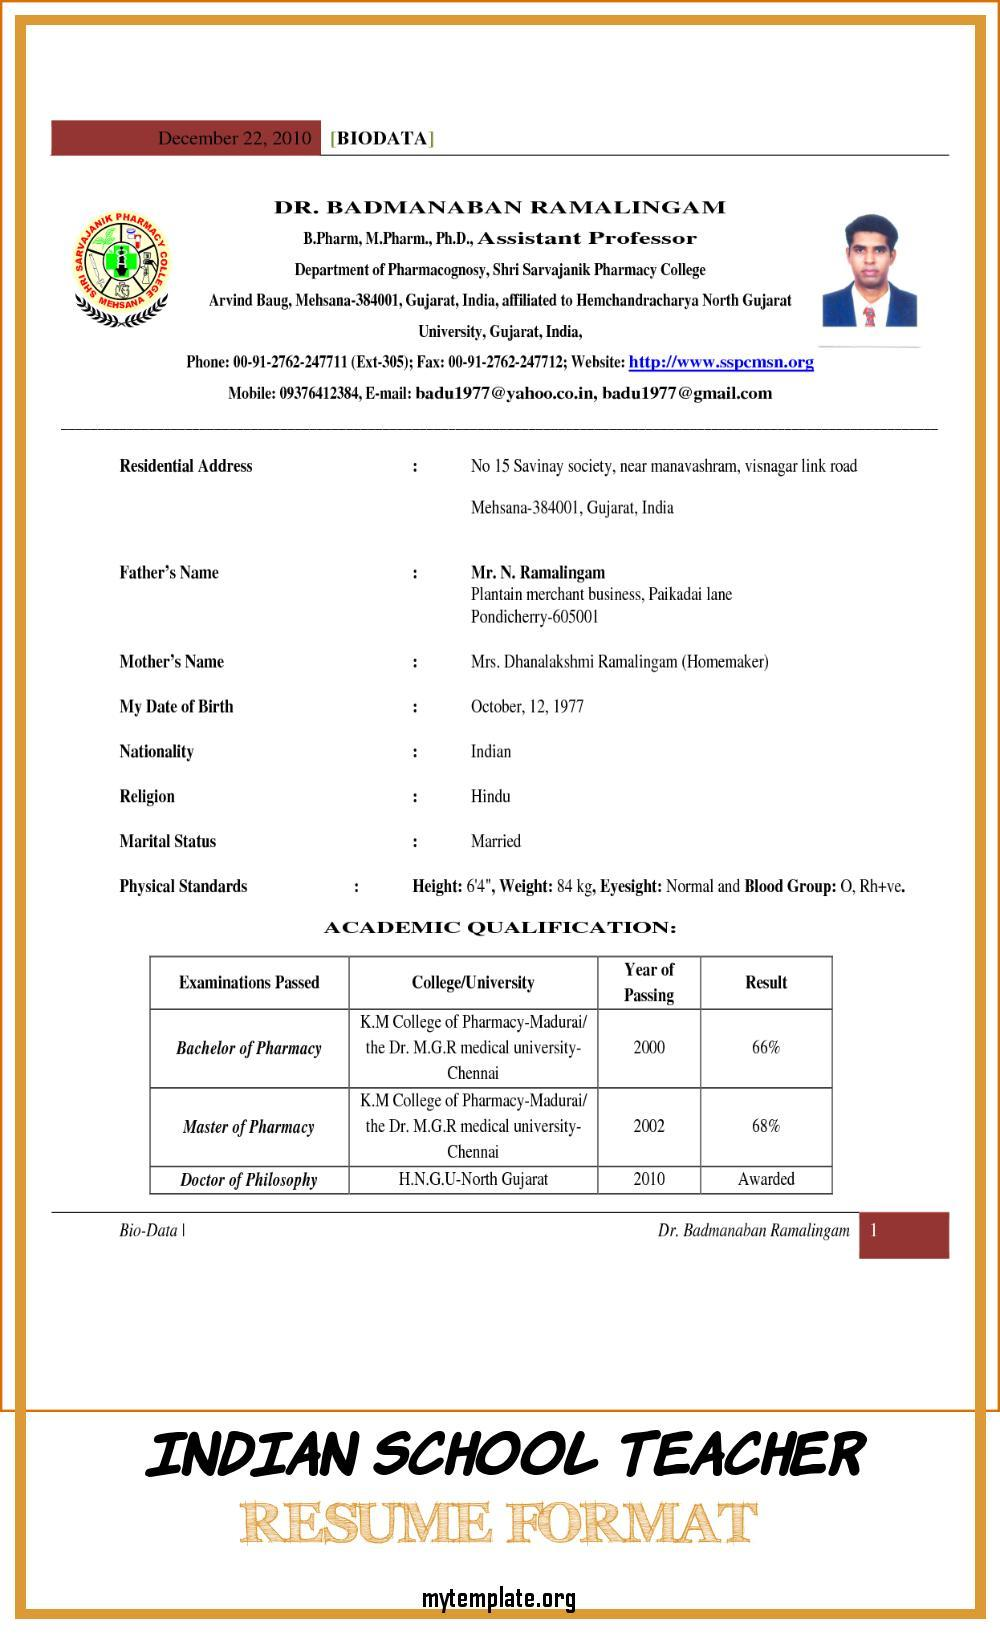 indian school teacher resume format free templates for of pin personal references on Resume Resume Format For Teacher